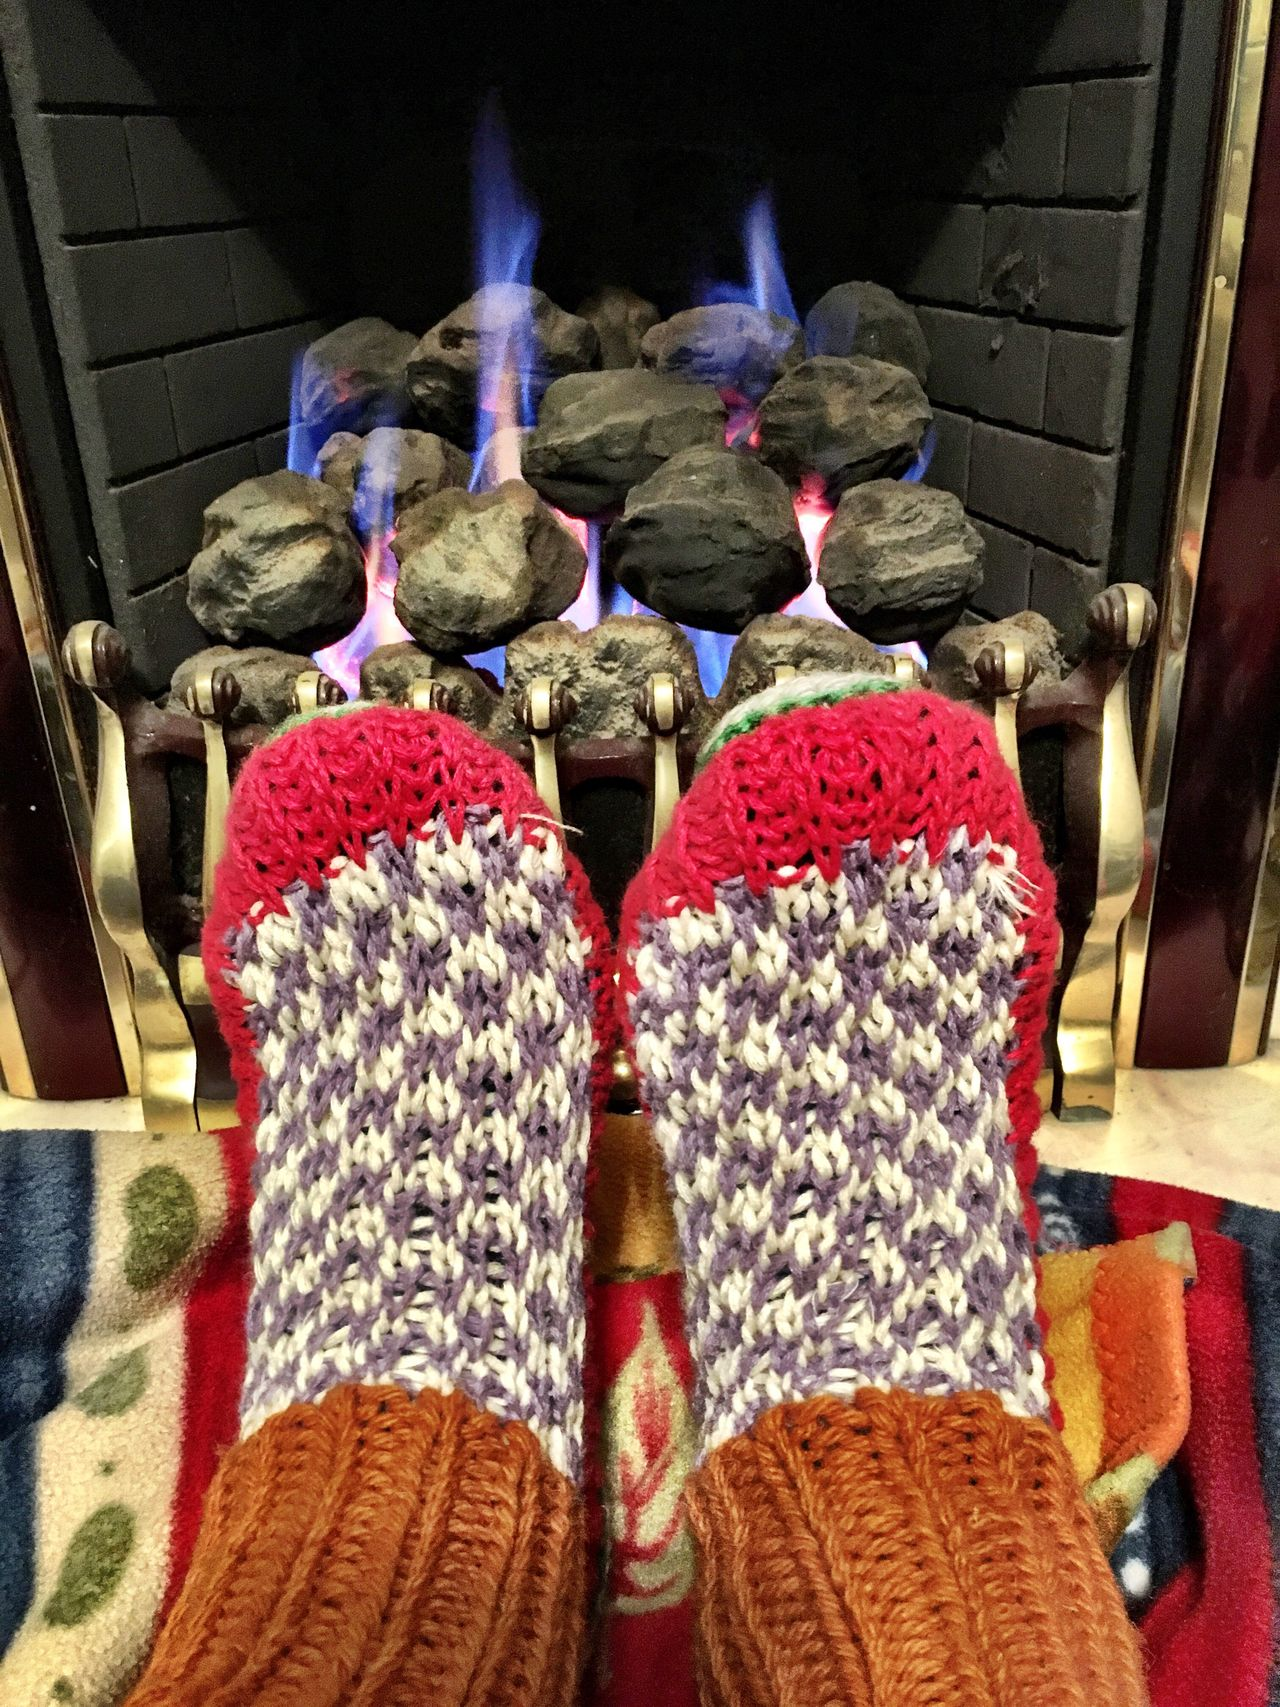 Warming By The Fire Knitted Socks Fireplace Fireplace Warmth Fire Indoors  Burning Flame Night Colour Image Human Body Part Winter Cosy